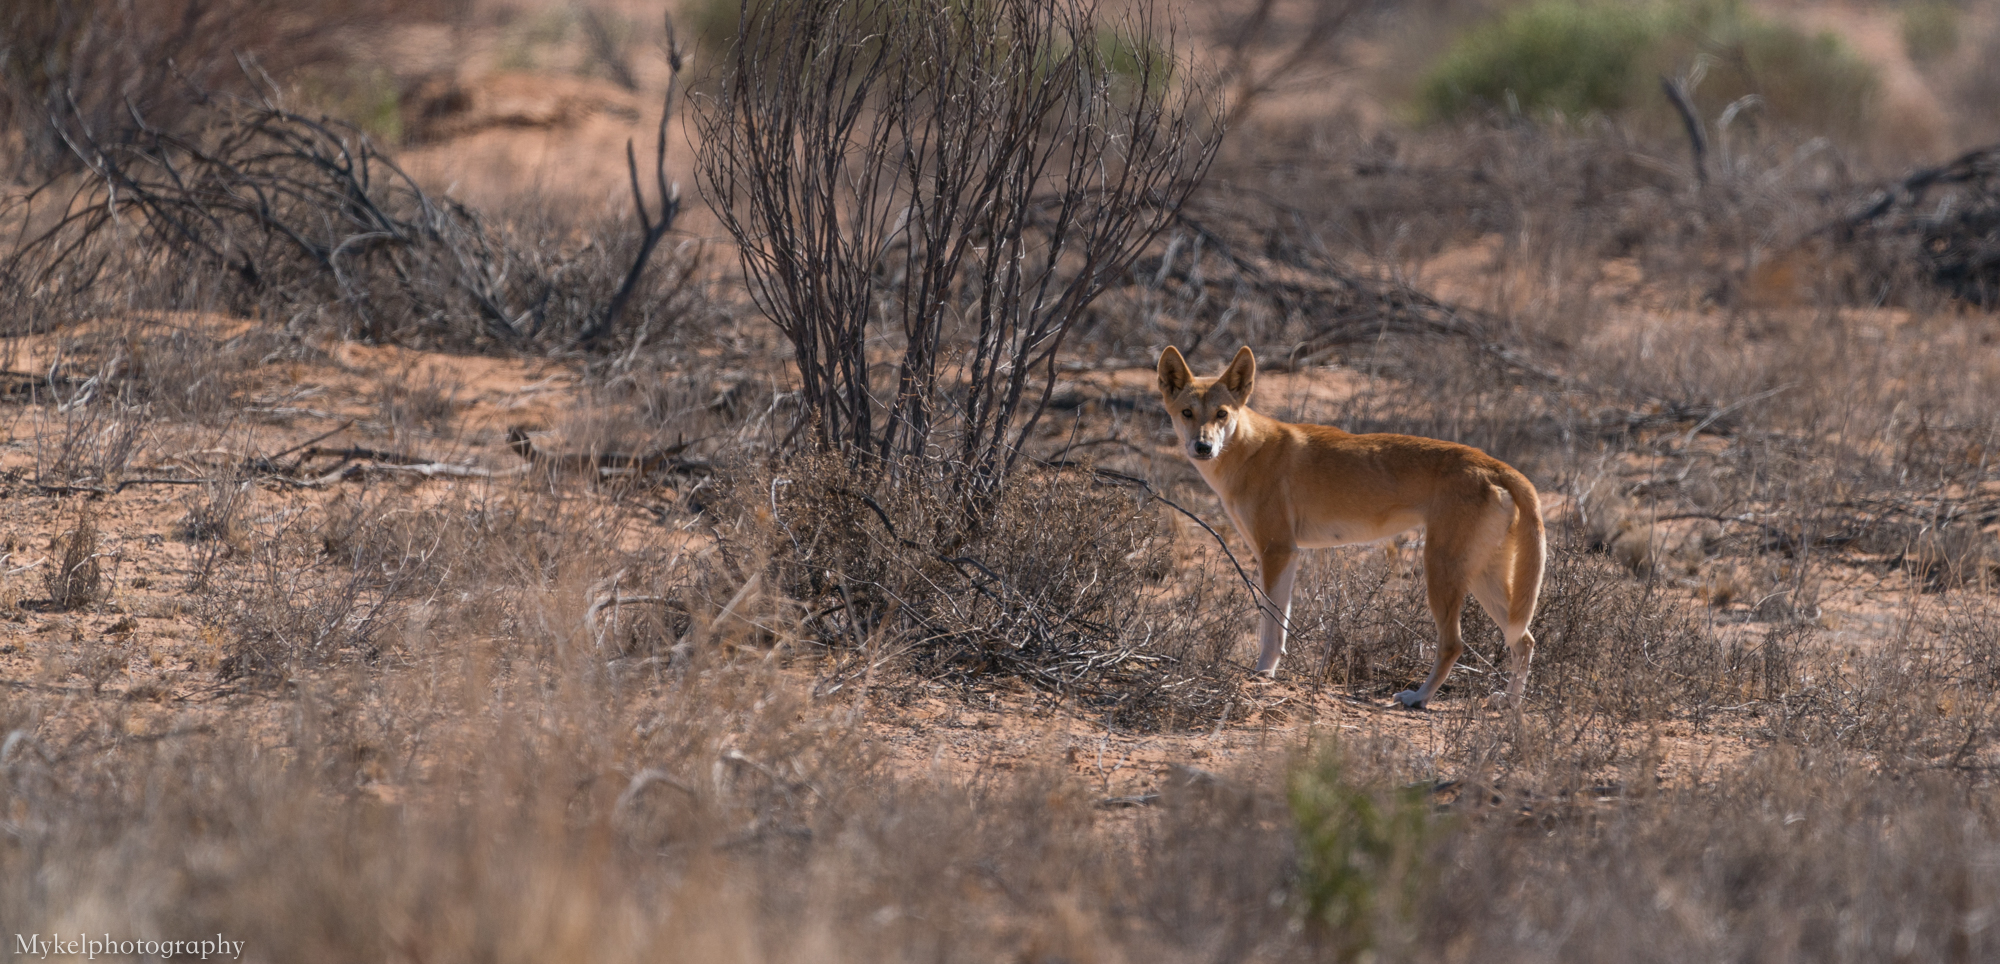 Dingoes are Australia's wild dog. They arrived in Australia about 5,000 years ago - brought to Australian shores by Indonesian Seafarers. Dingoes do not bark, but howl like wolves.